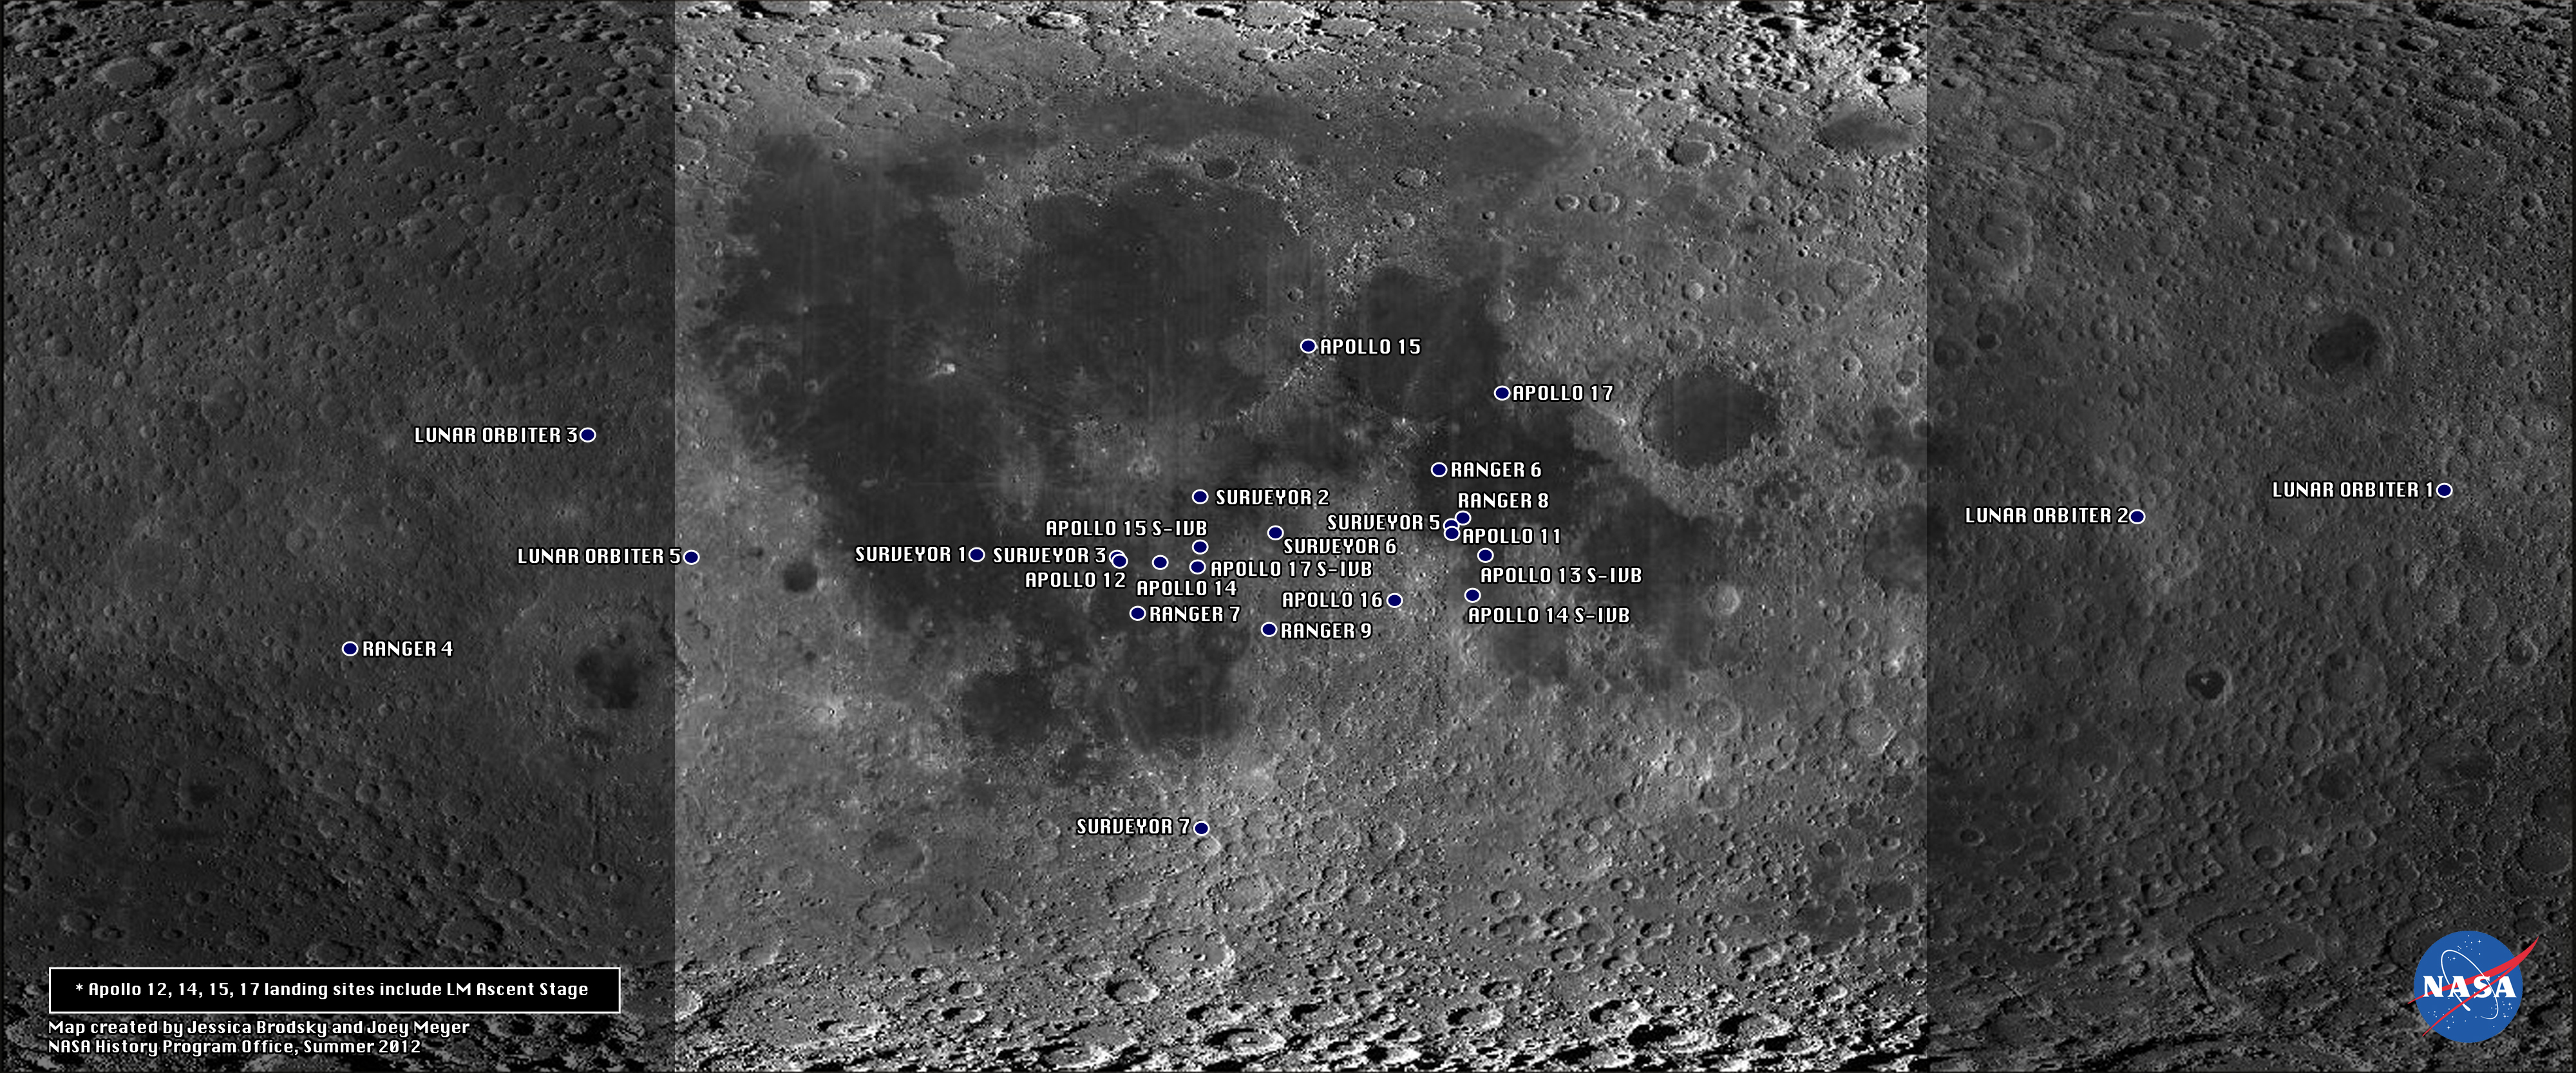 Human Artifacts on the Moon